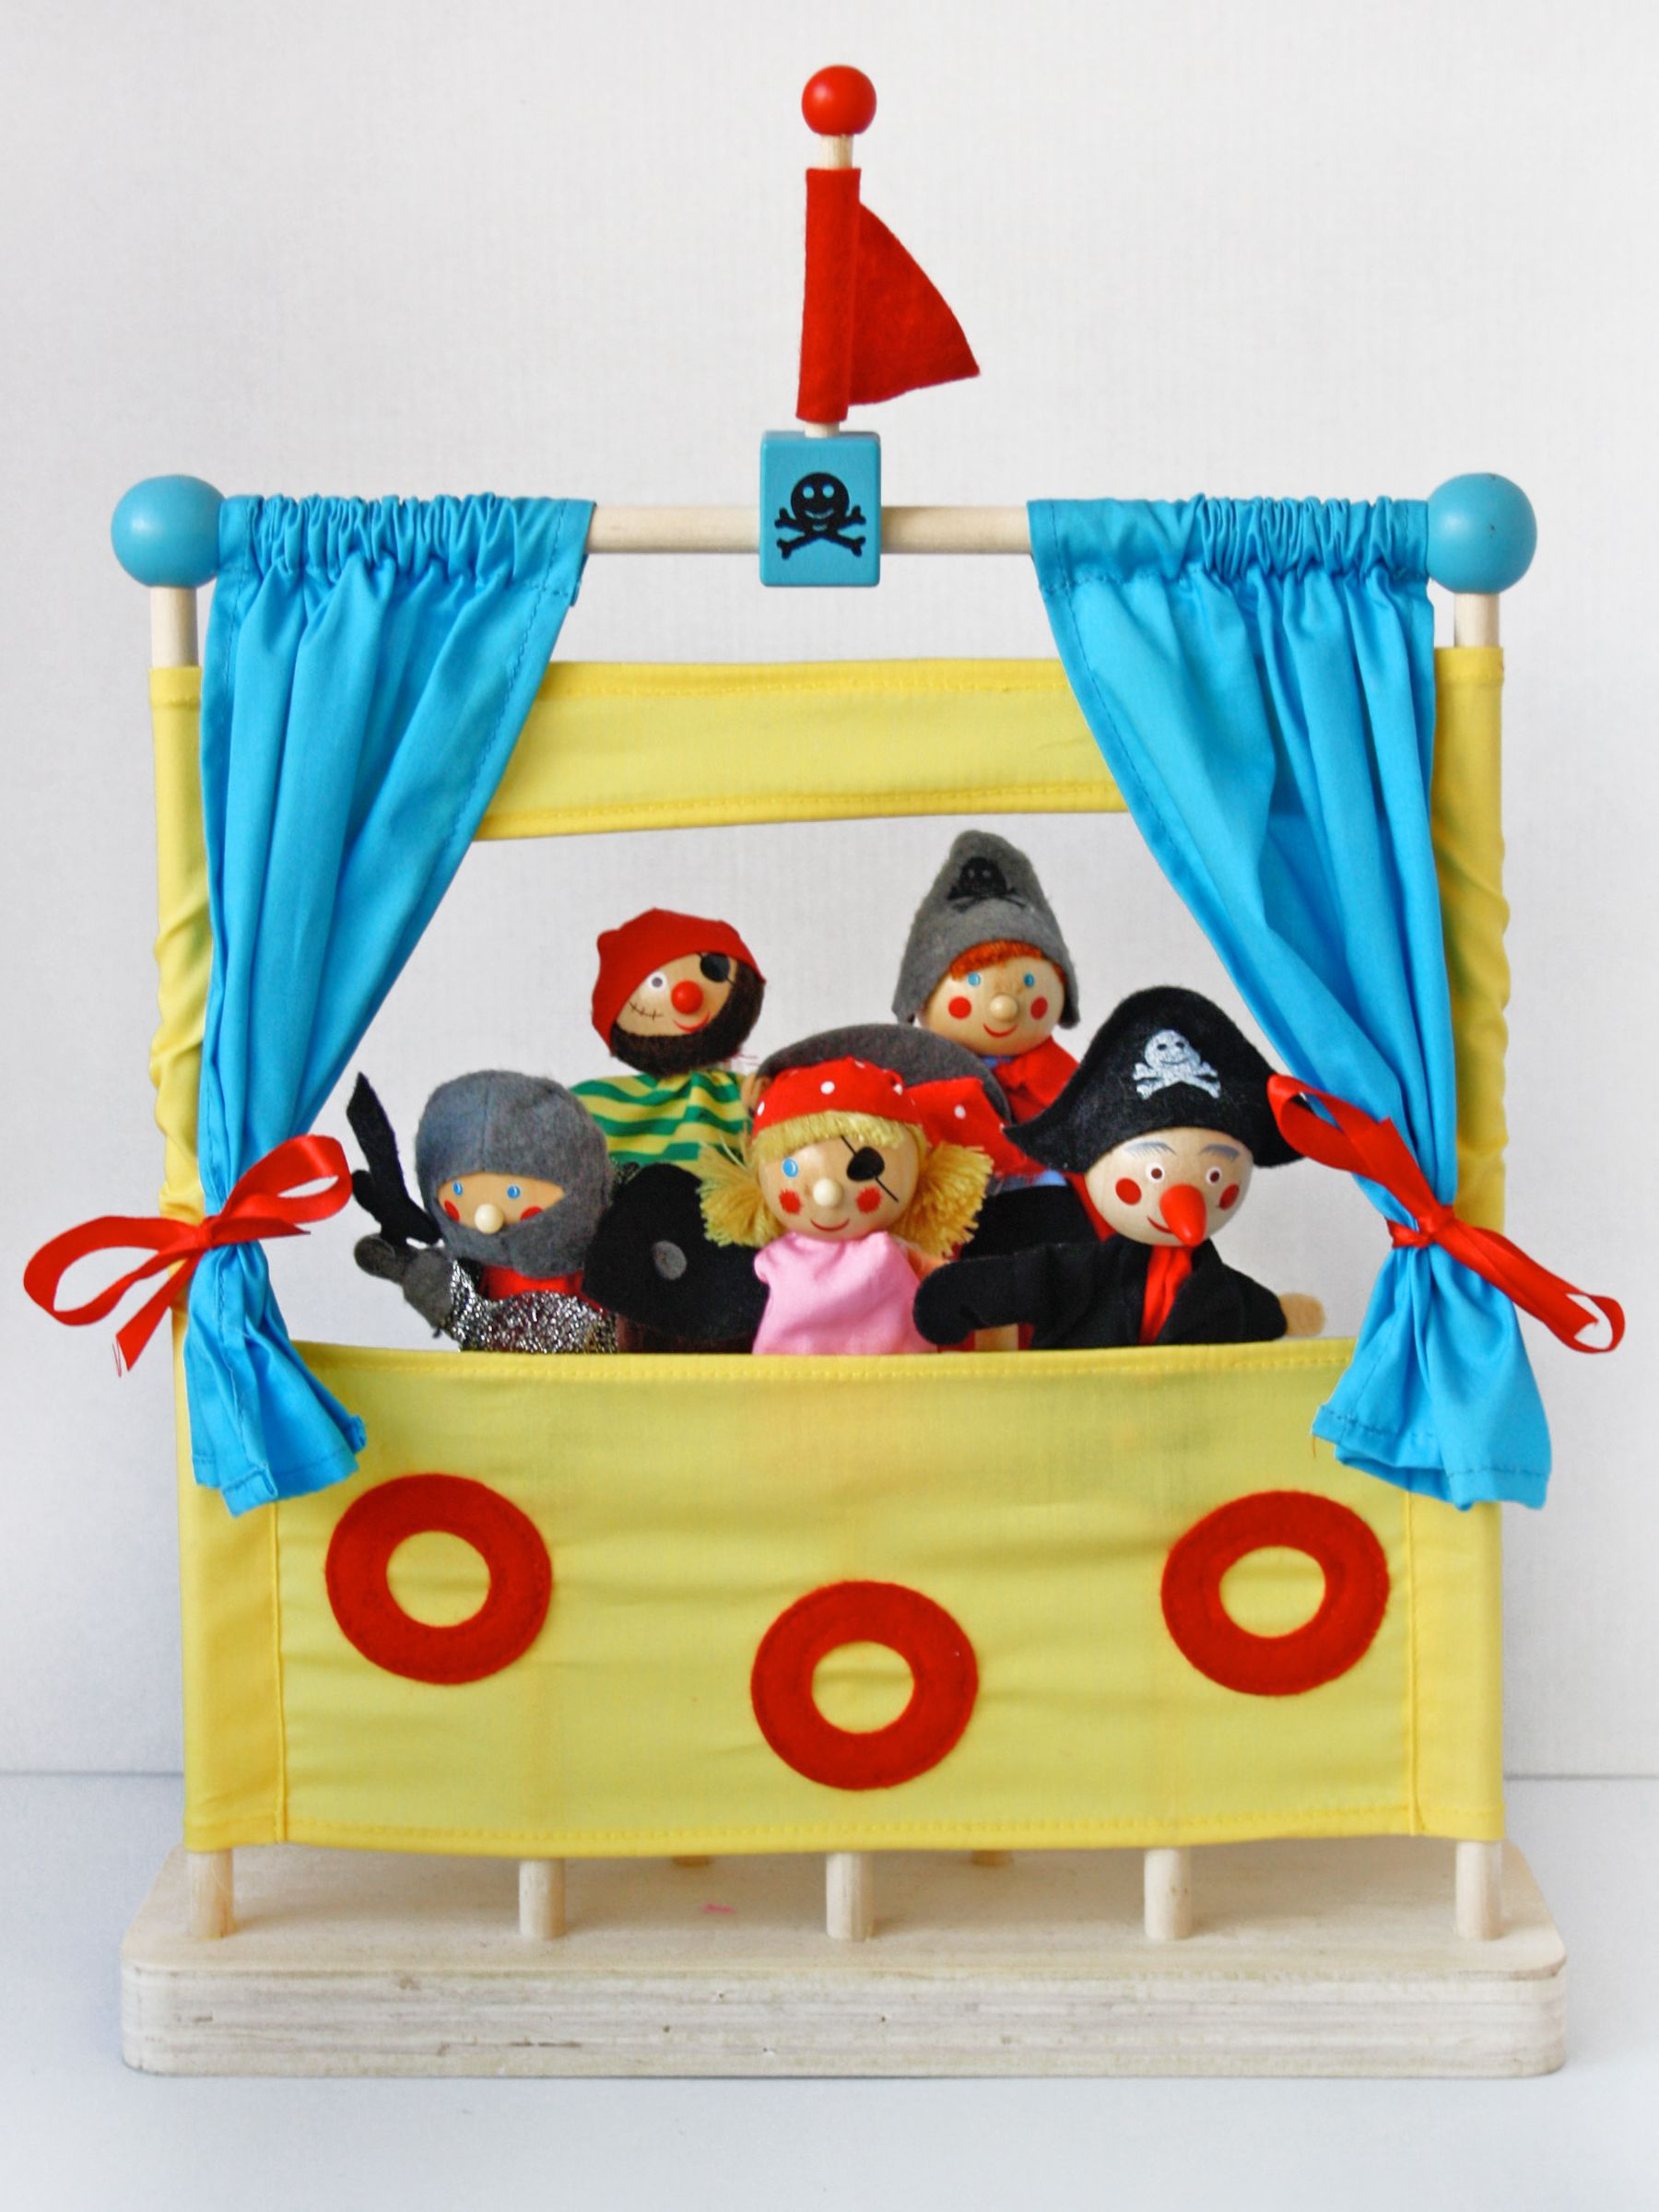 Mocka's Pirate Theatre is a complete puppetry show that